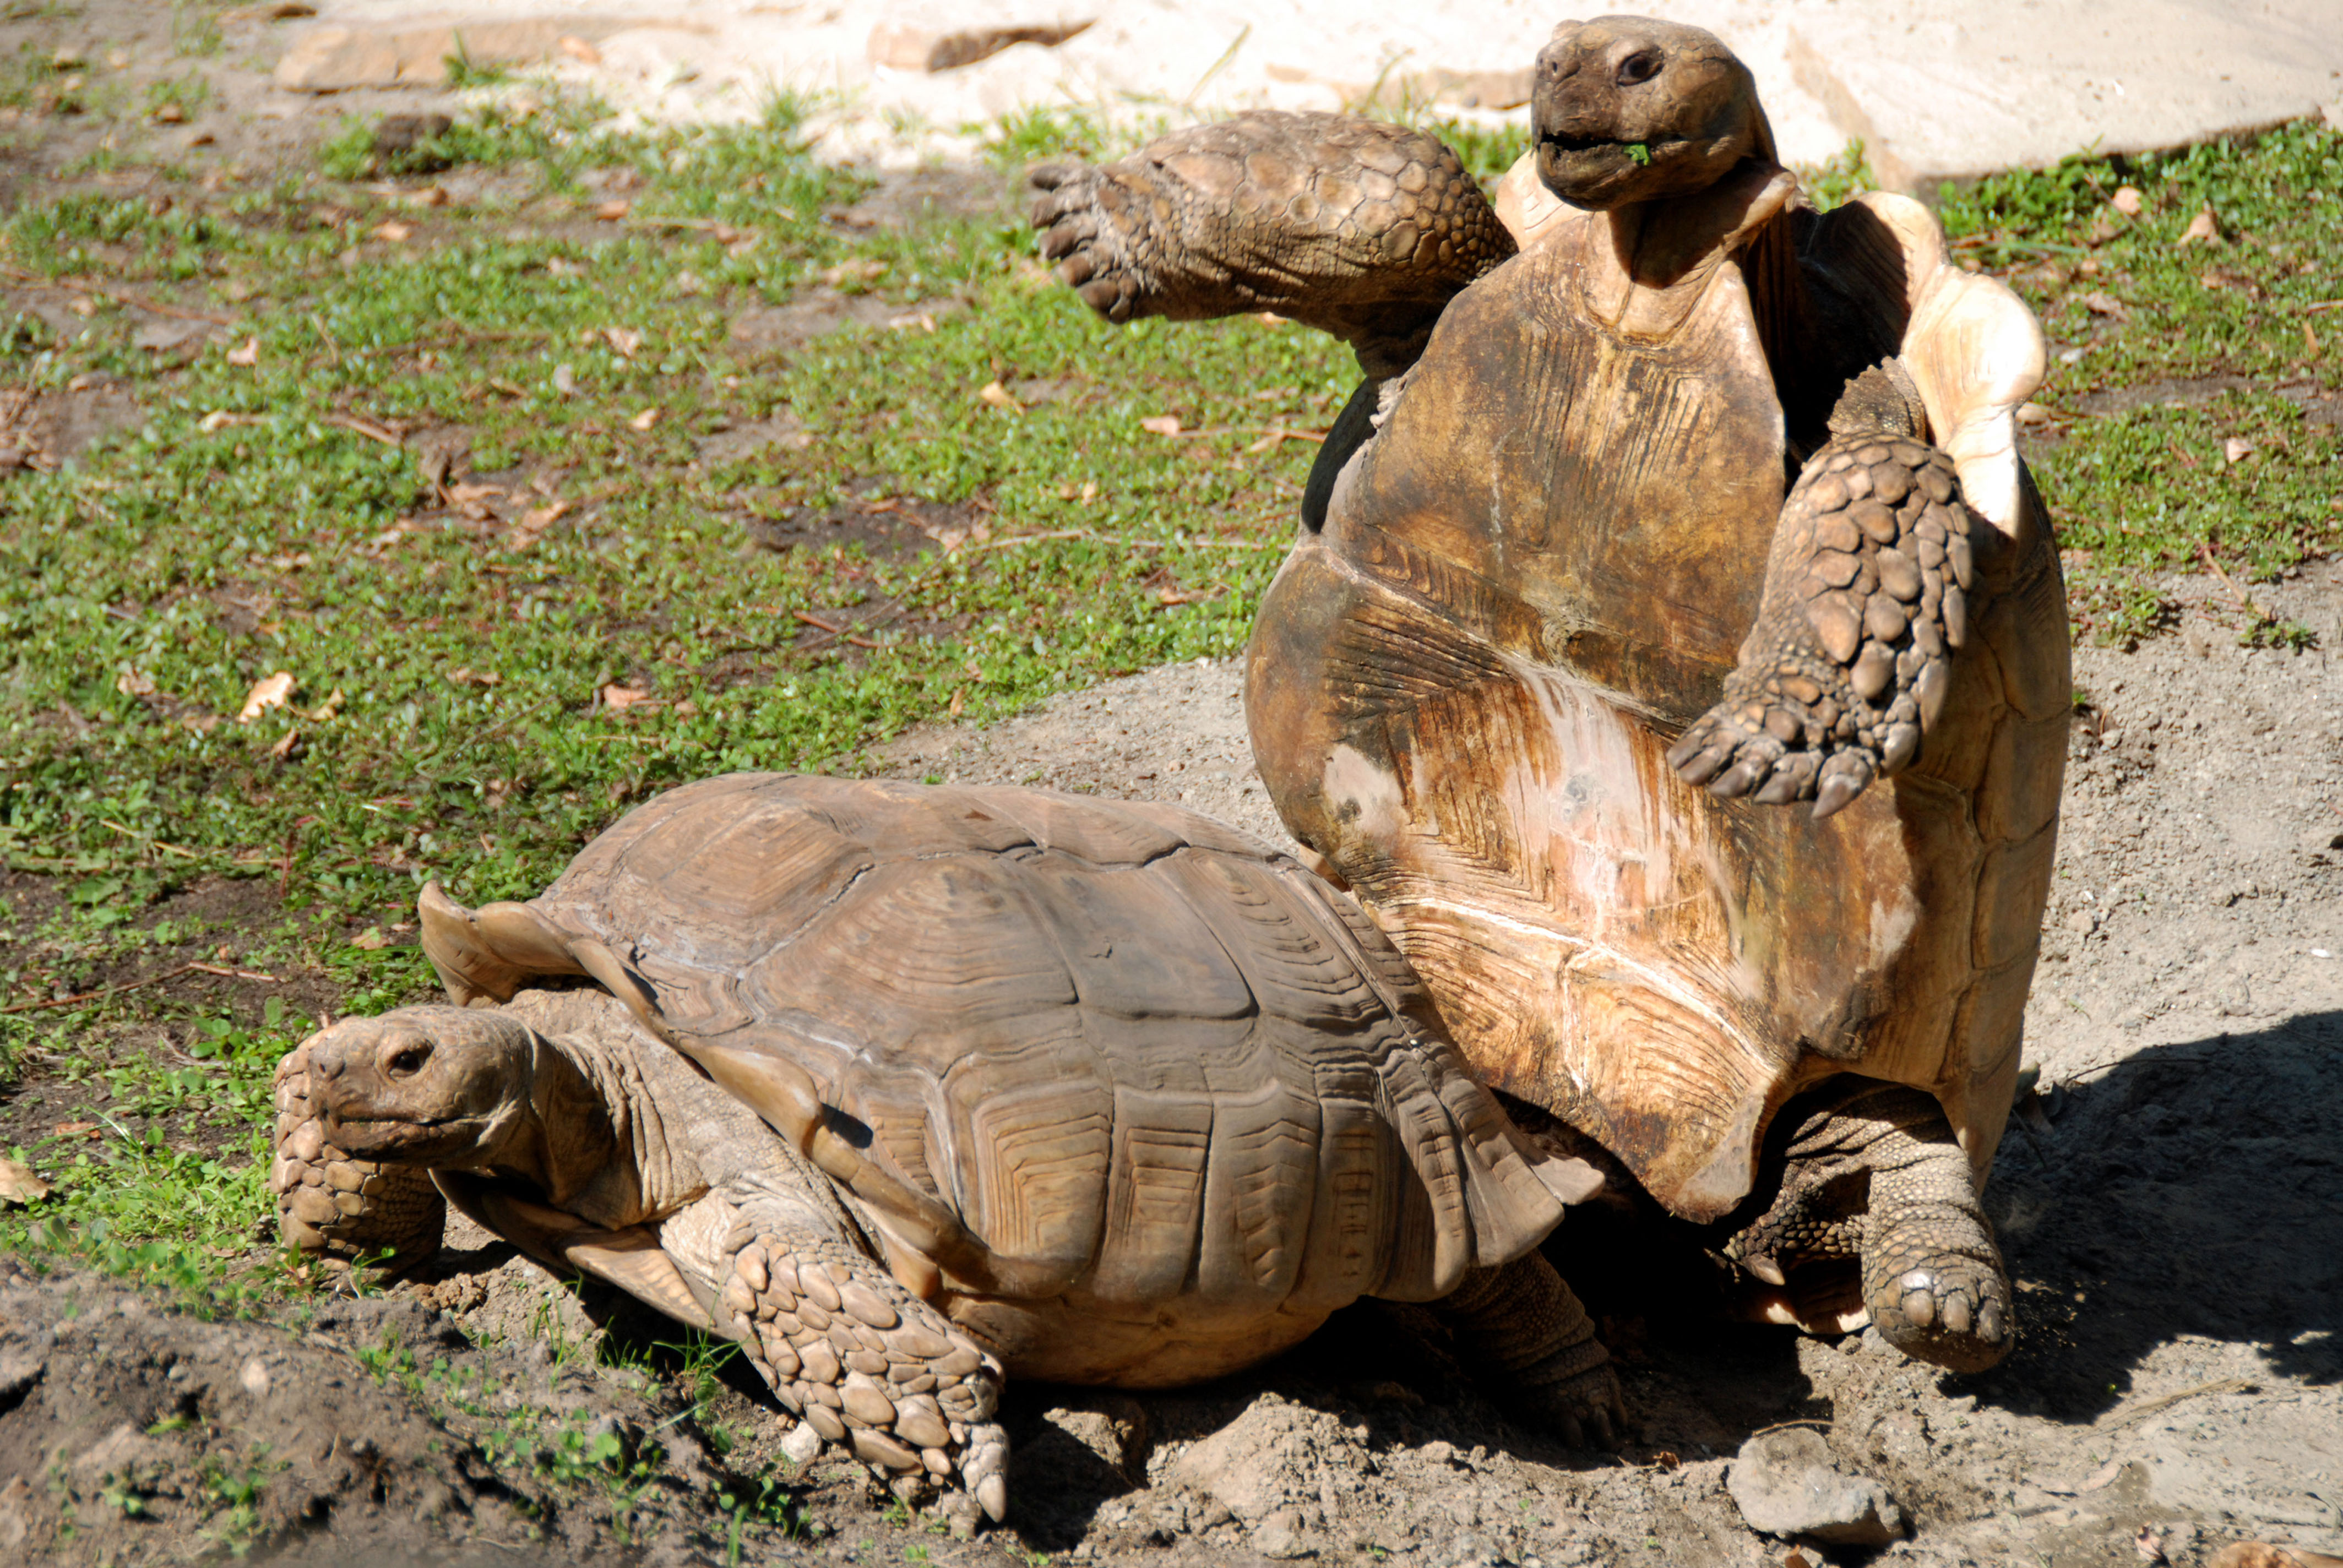 Tortoise Seen Lying Down On Job After Trying To Mount Female